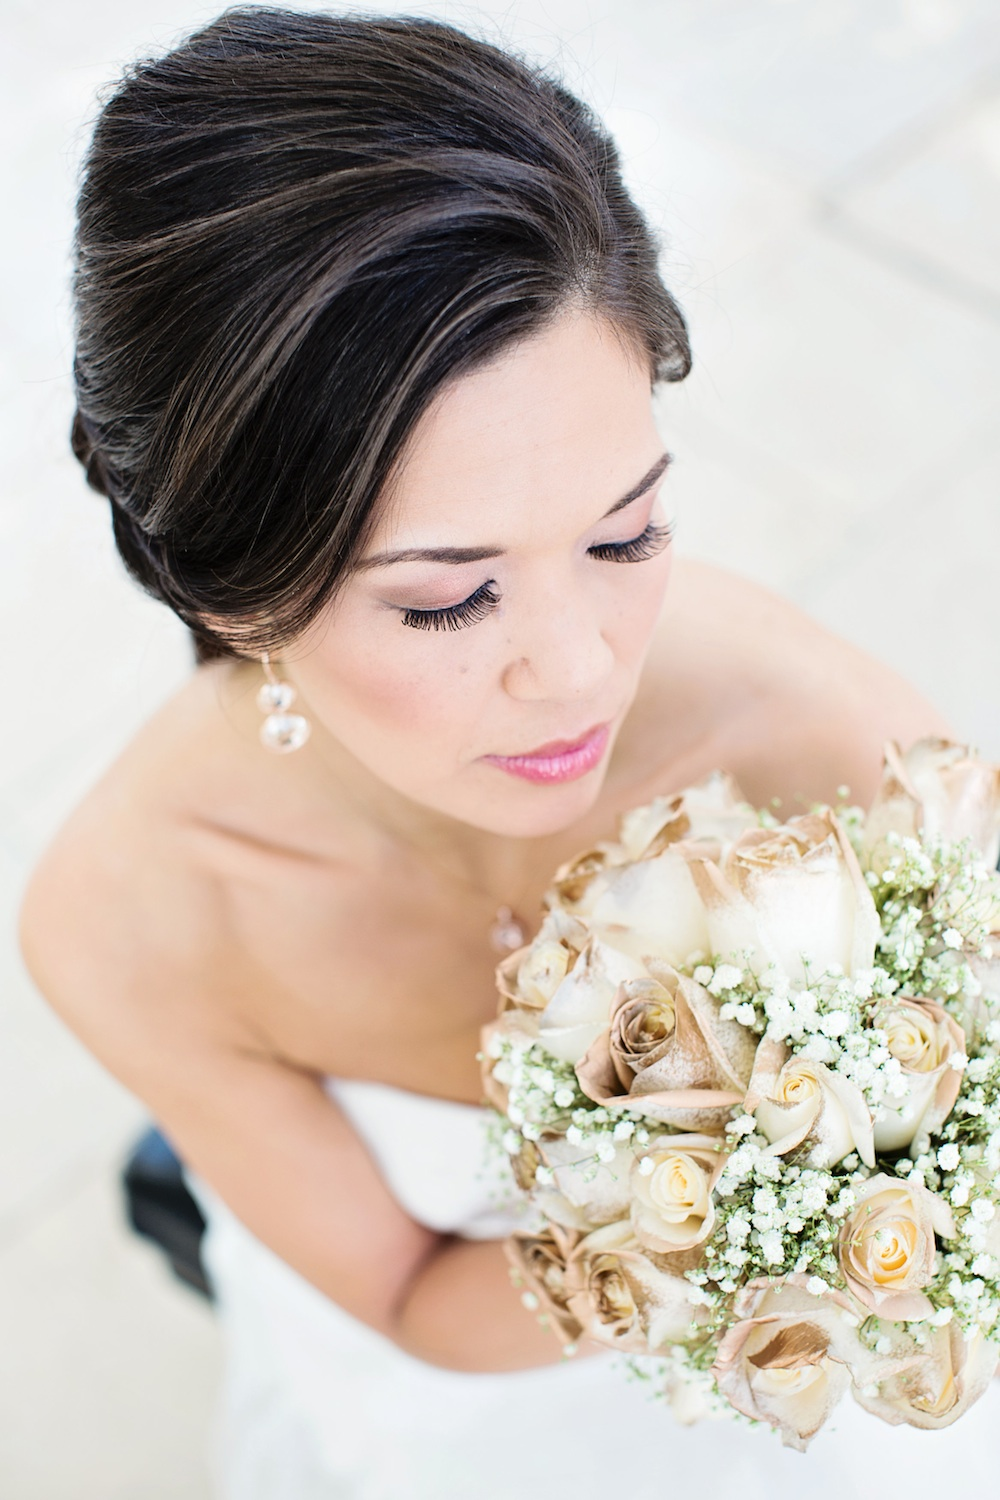 g-michael-salon-shoot-052914-gold-rose-bouquet.jpg